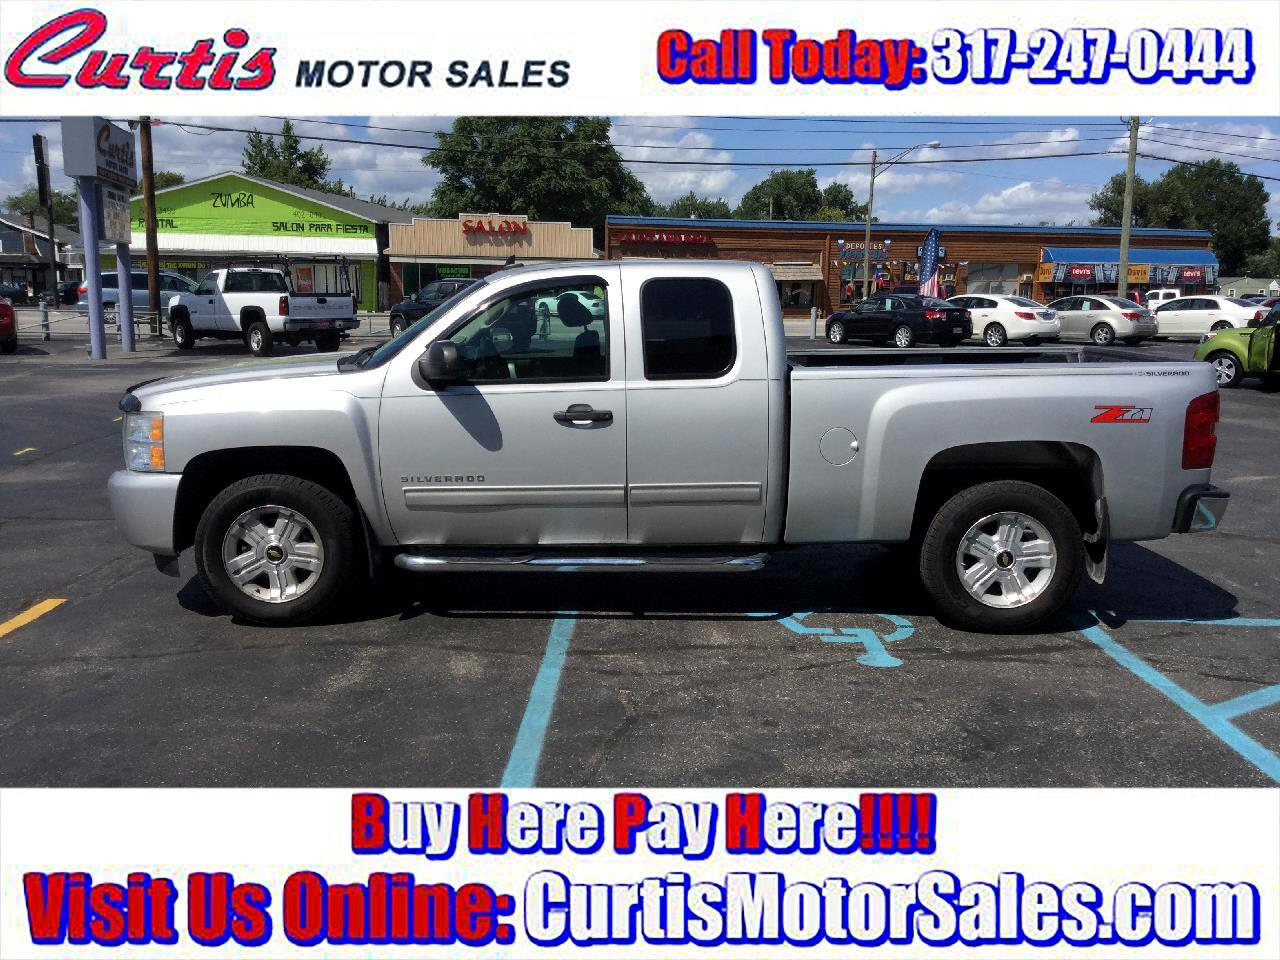 Curtis Motor Sales Inventory of Used Cars for Sale